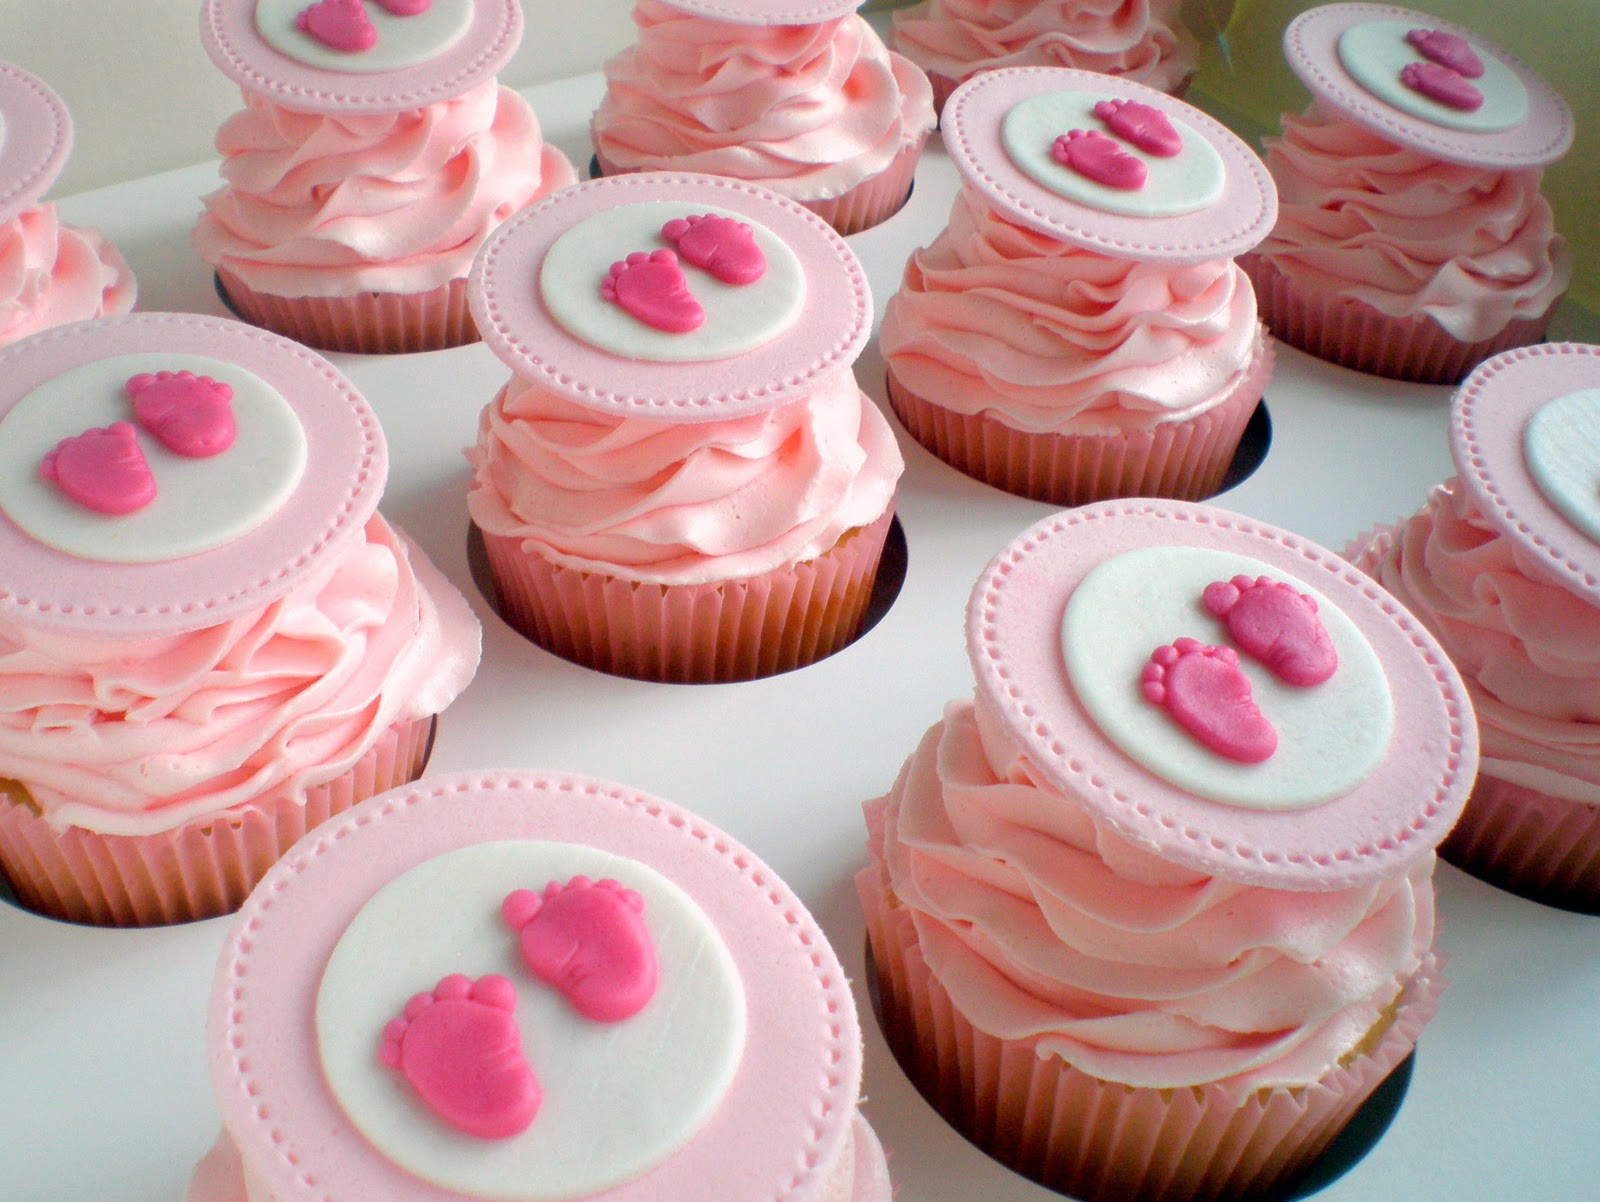 Living Room Decorating Ideas: Baby Shower Cupcakes For A Girl